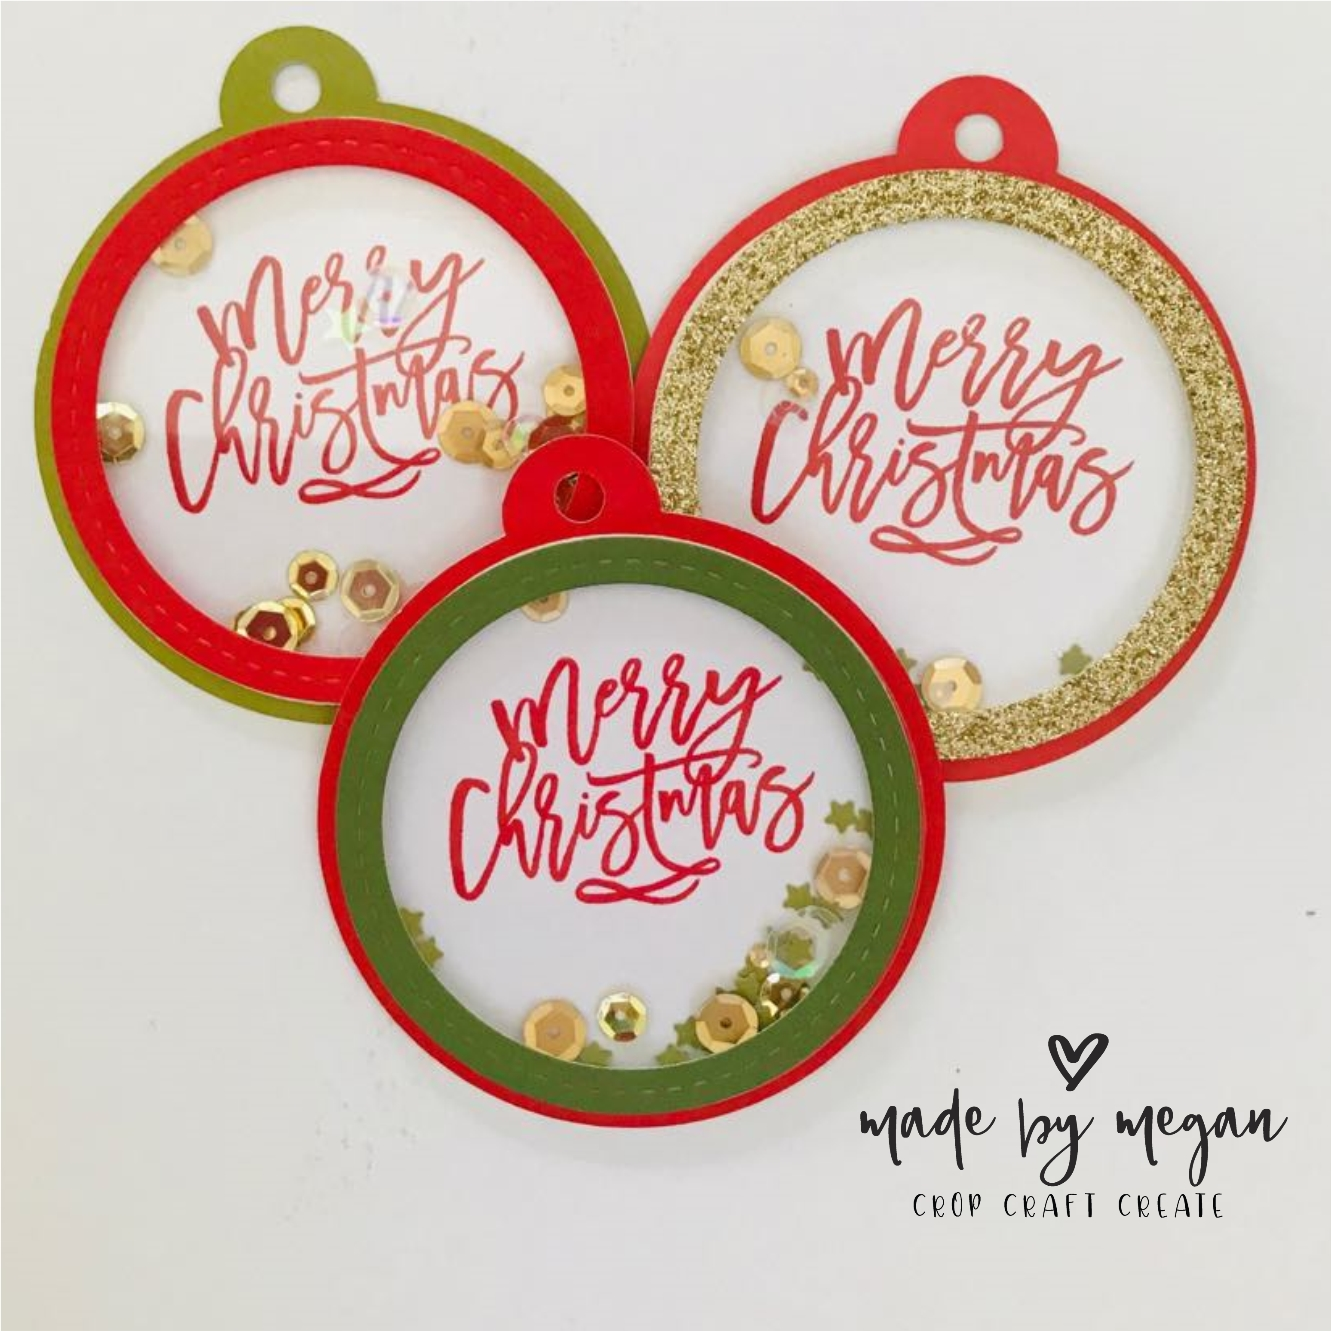 Christmas tree decorations created using shaker 'cards'